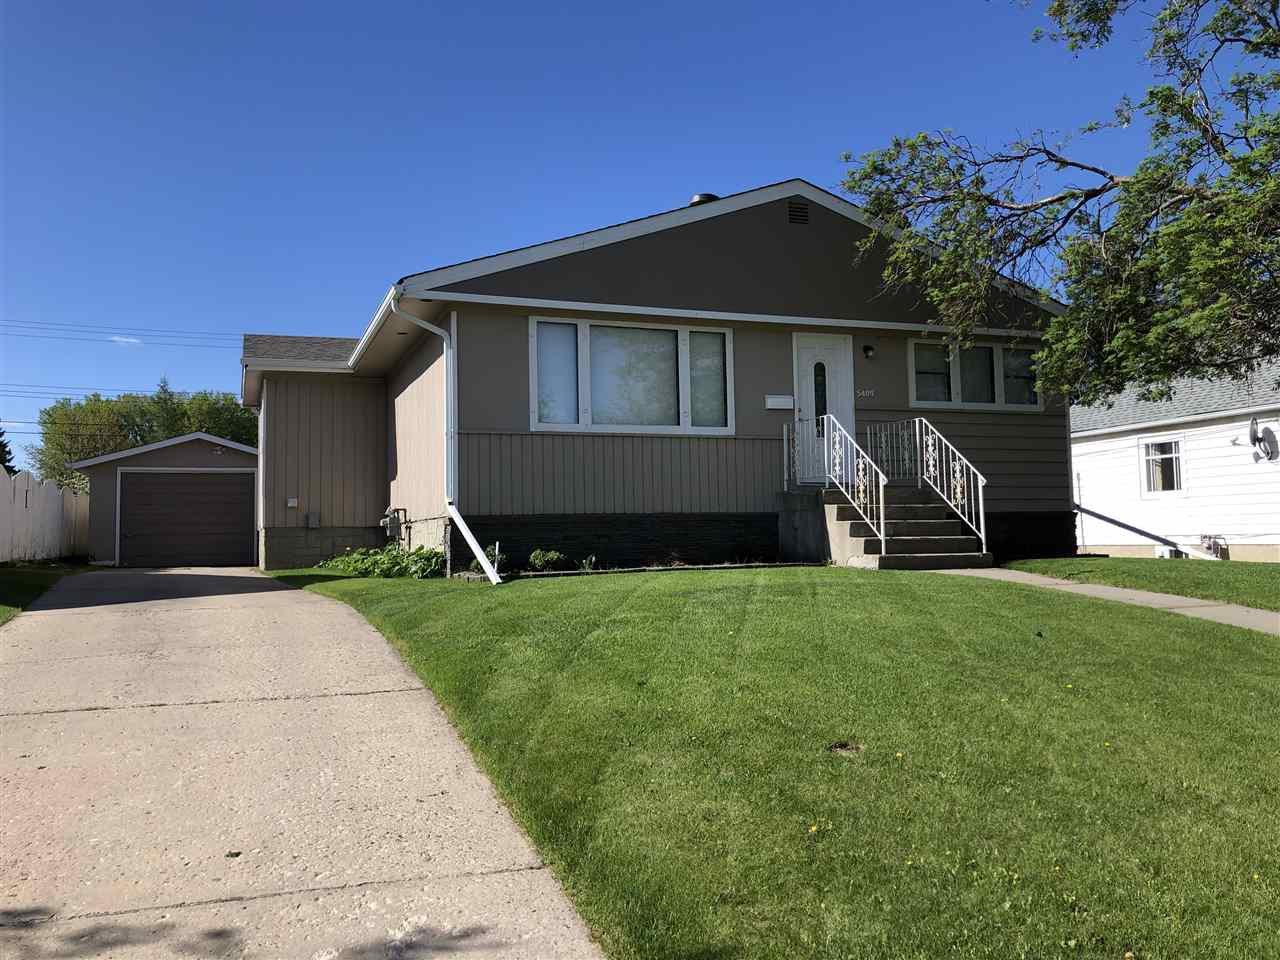 Main Photo: 5409 45 Avenue: Wetaskiwin House for sale : MLS®# E4189509